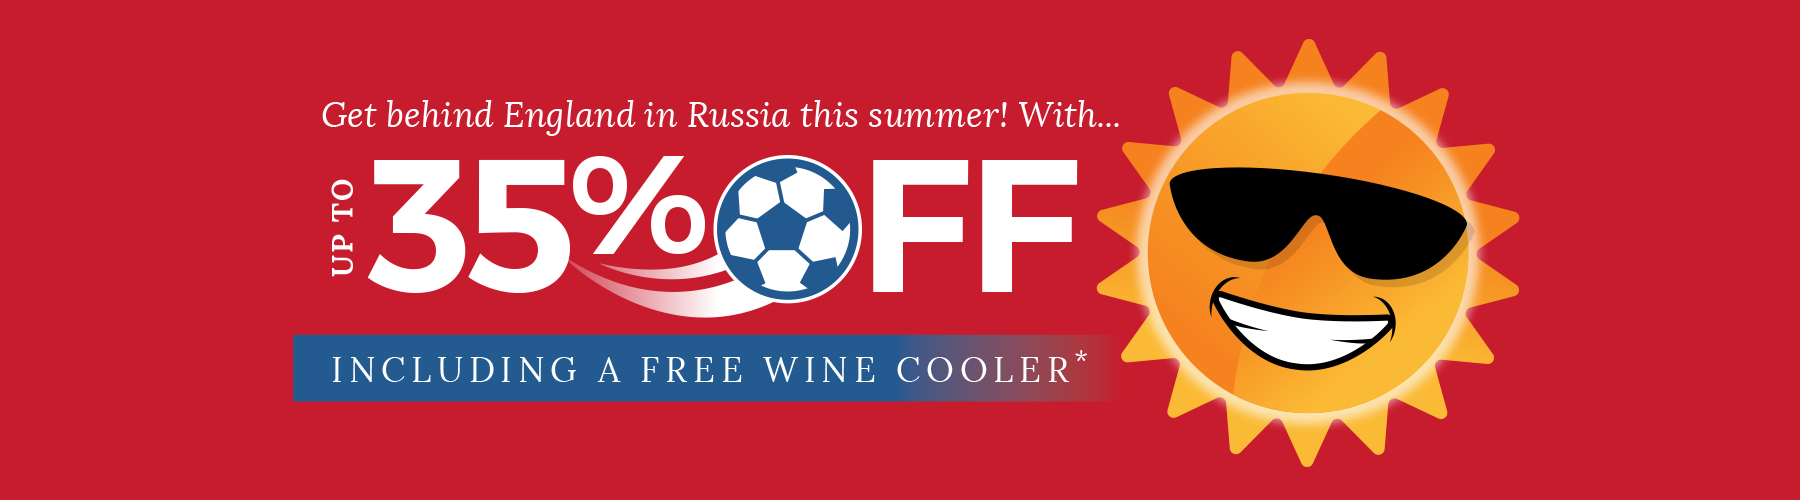 Direct Kitchens England 35% off Sale Offer Football free Wine Cooler